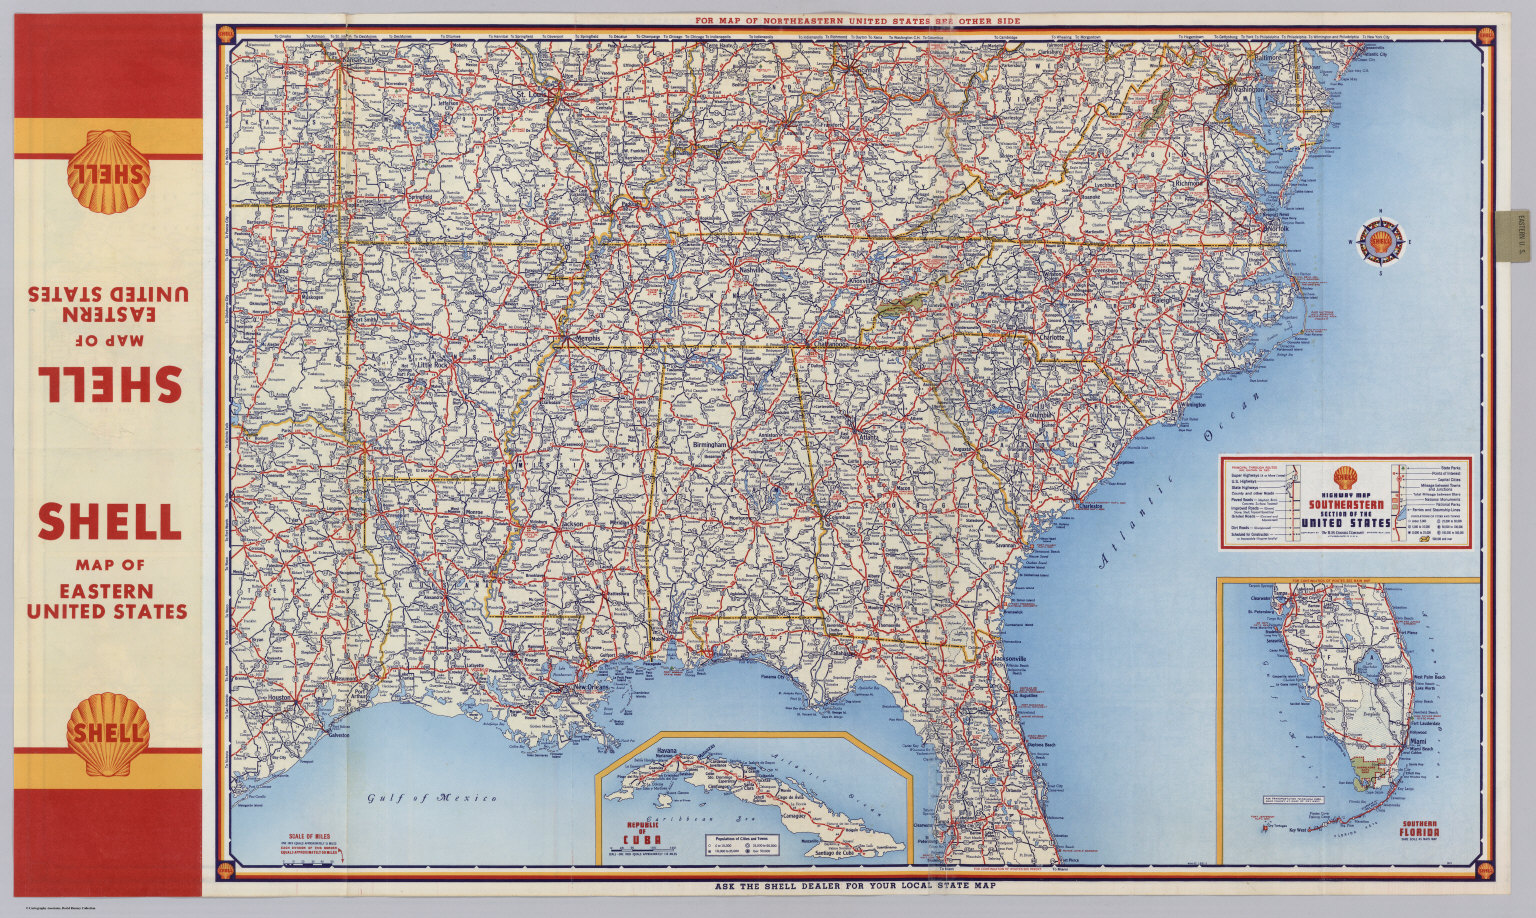 Shell Highway Map Southeastern Section of the United States